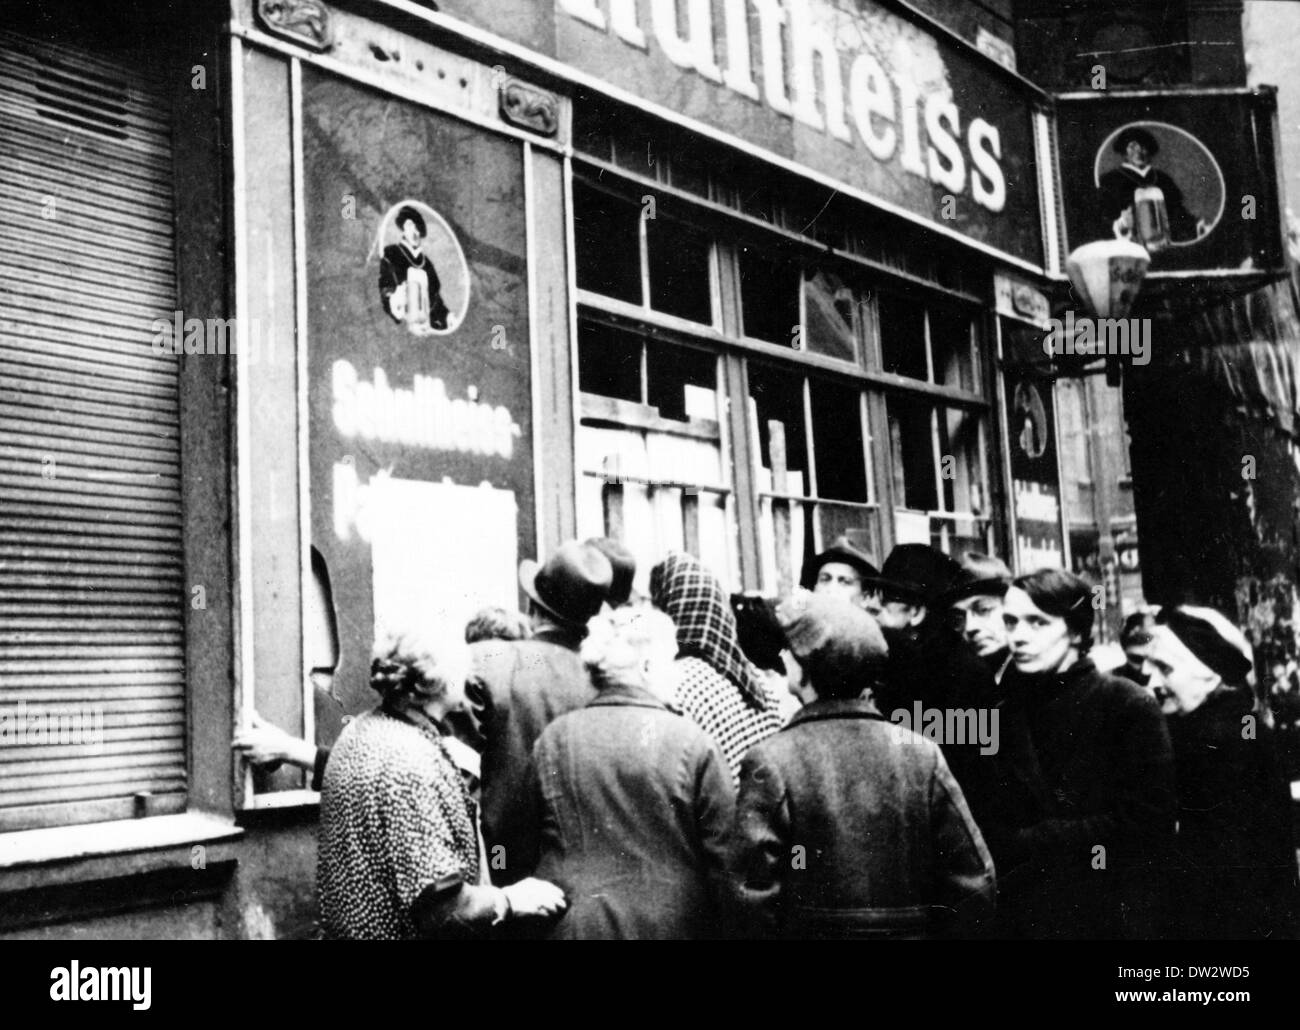 People read an anouncement put up on a Schultheiss premises in Berlin, May 1945. Photo: Berliner Verlag / Archive - NO WIRE SERVICE - Stock Image